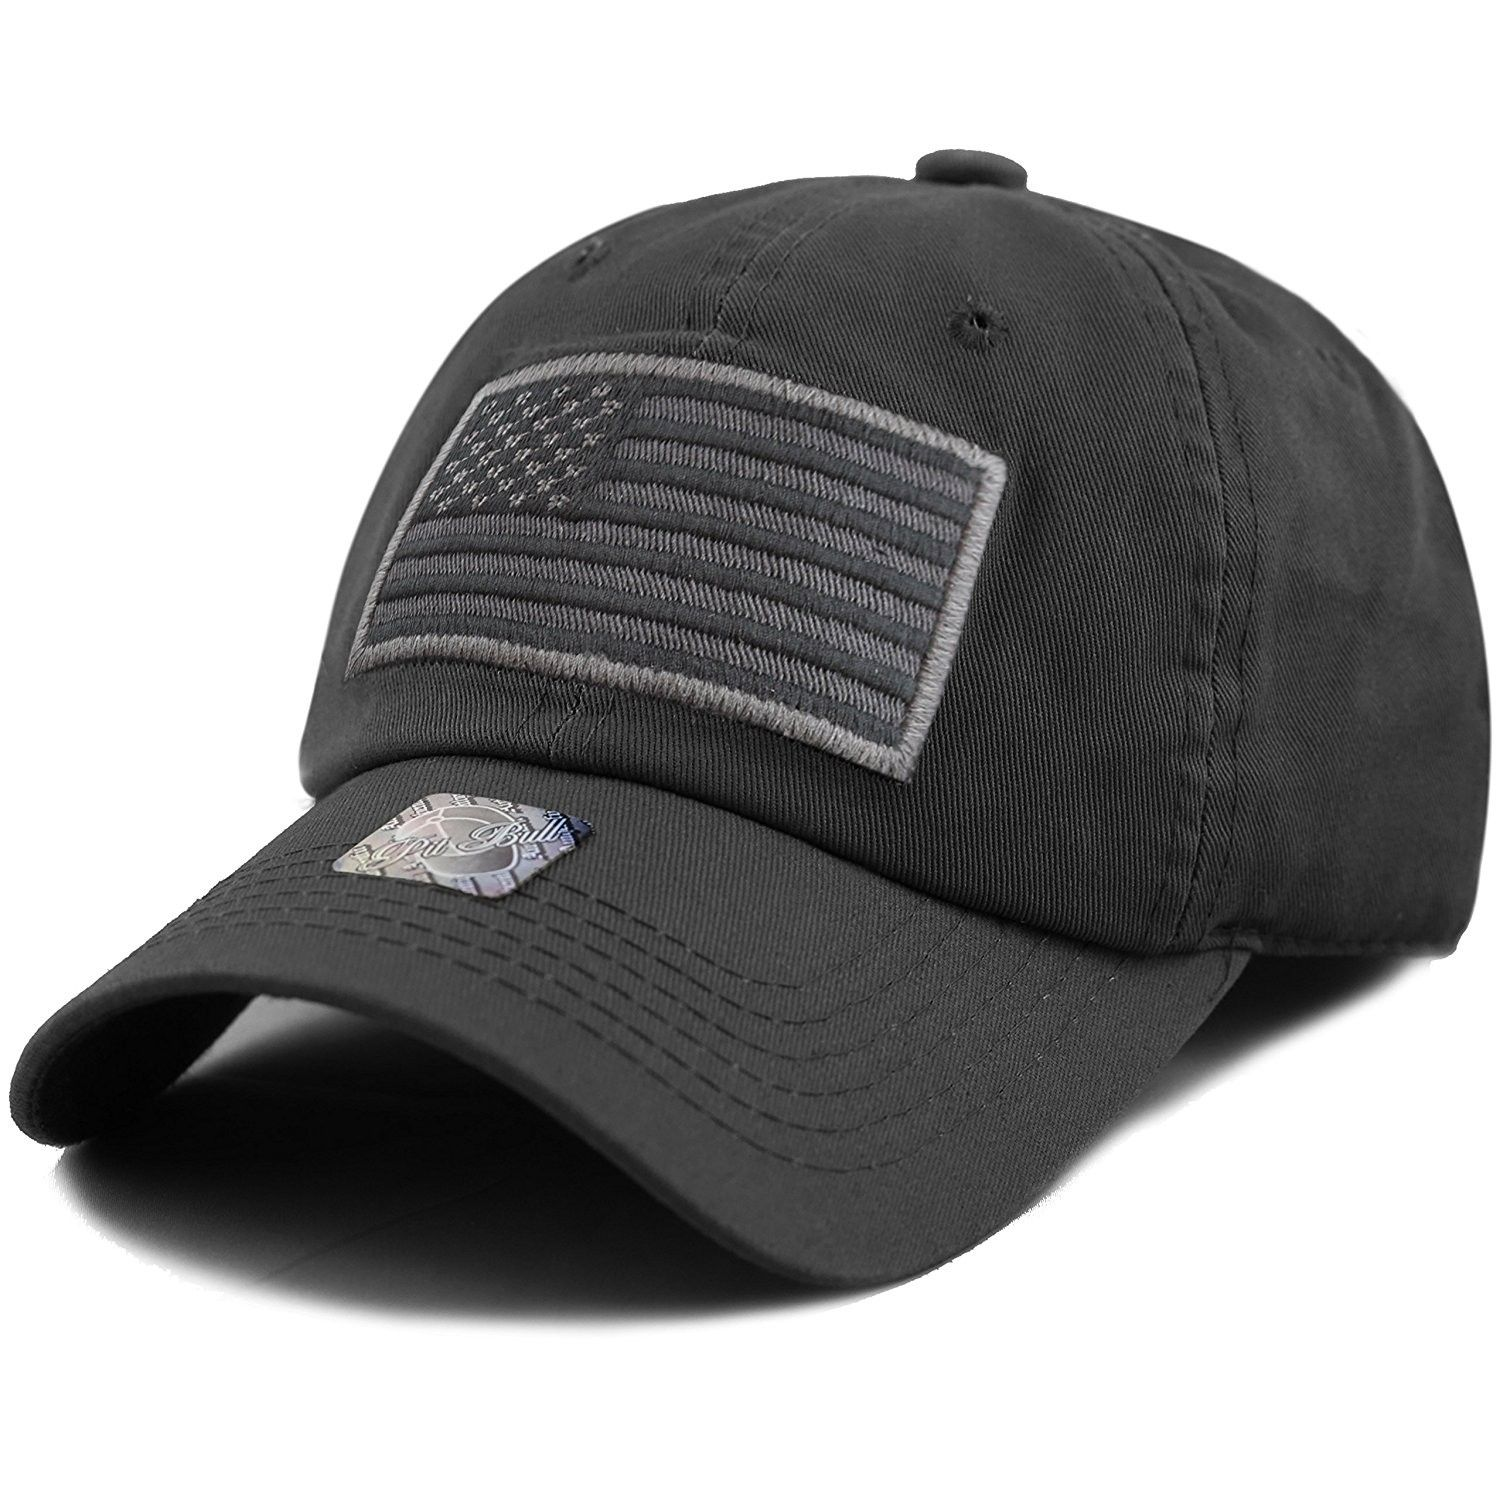 Low Profile Tactical Operator Usa Flag Buckle Cotton Cap Black 2 Ch1836cyy6c Hats For Men Tactical Operator Usa Flag